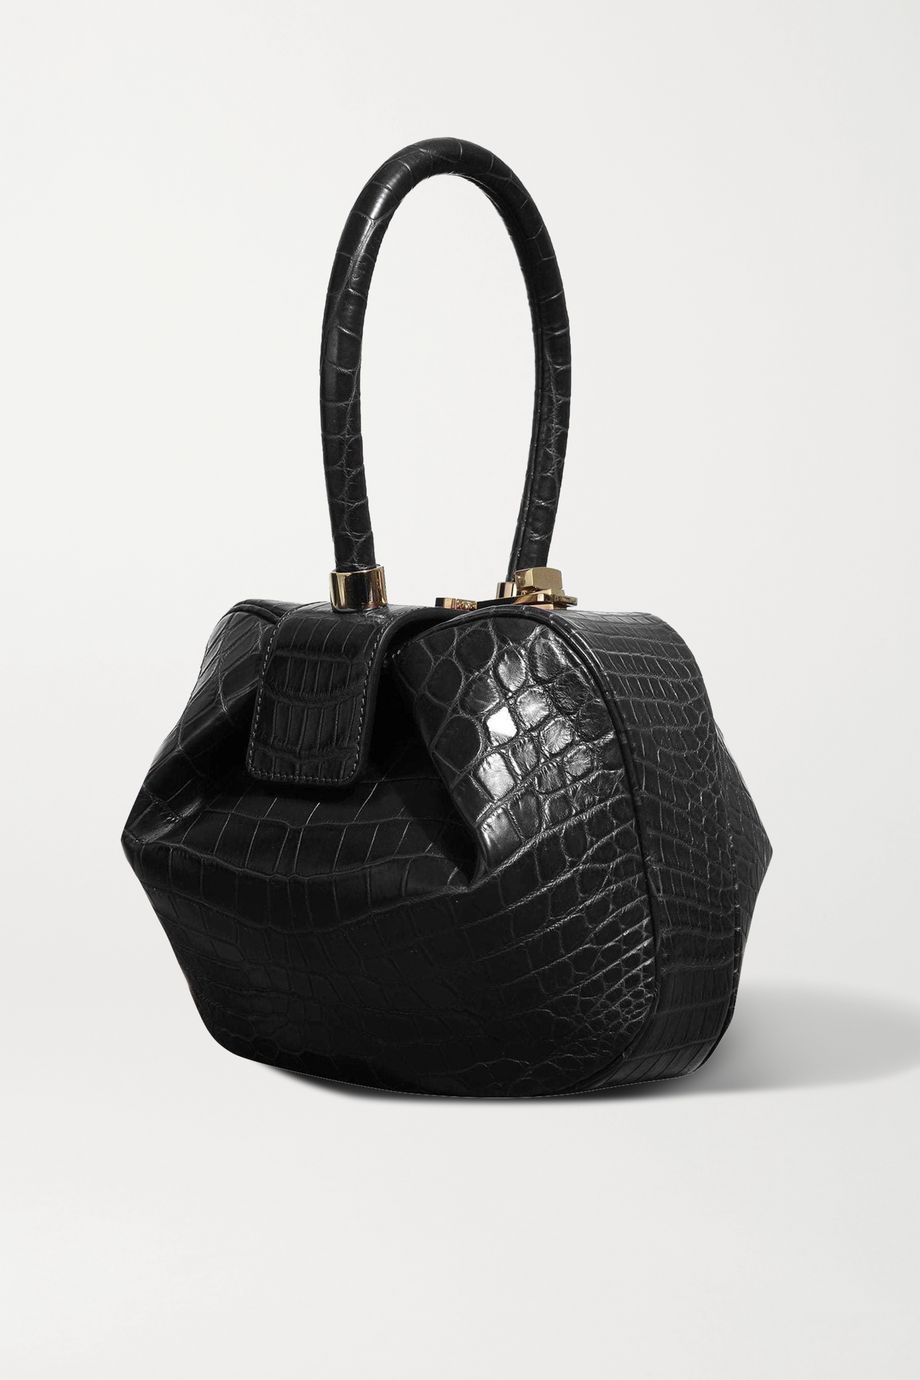 Gabriela Hearst Sac à main en crocodile Demi Mini